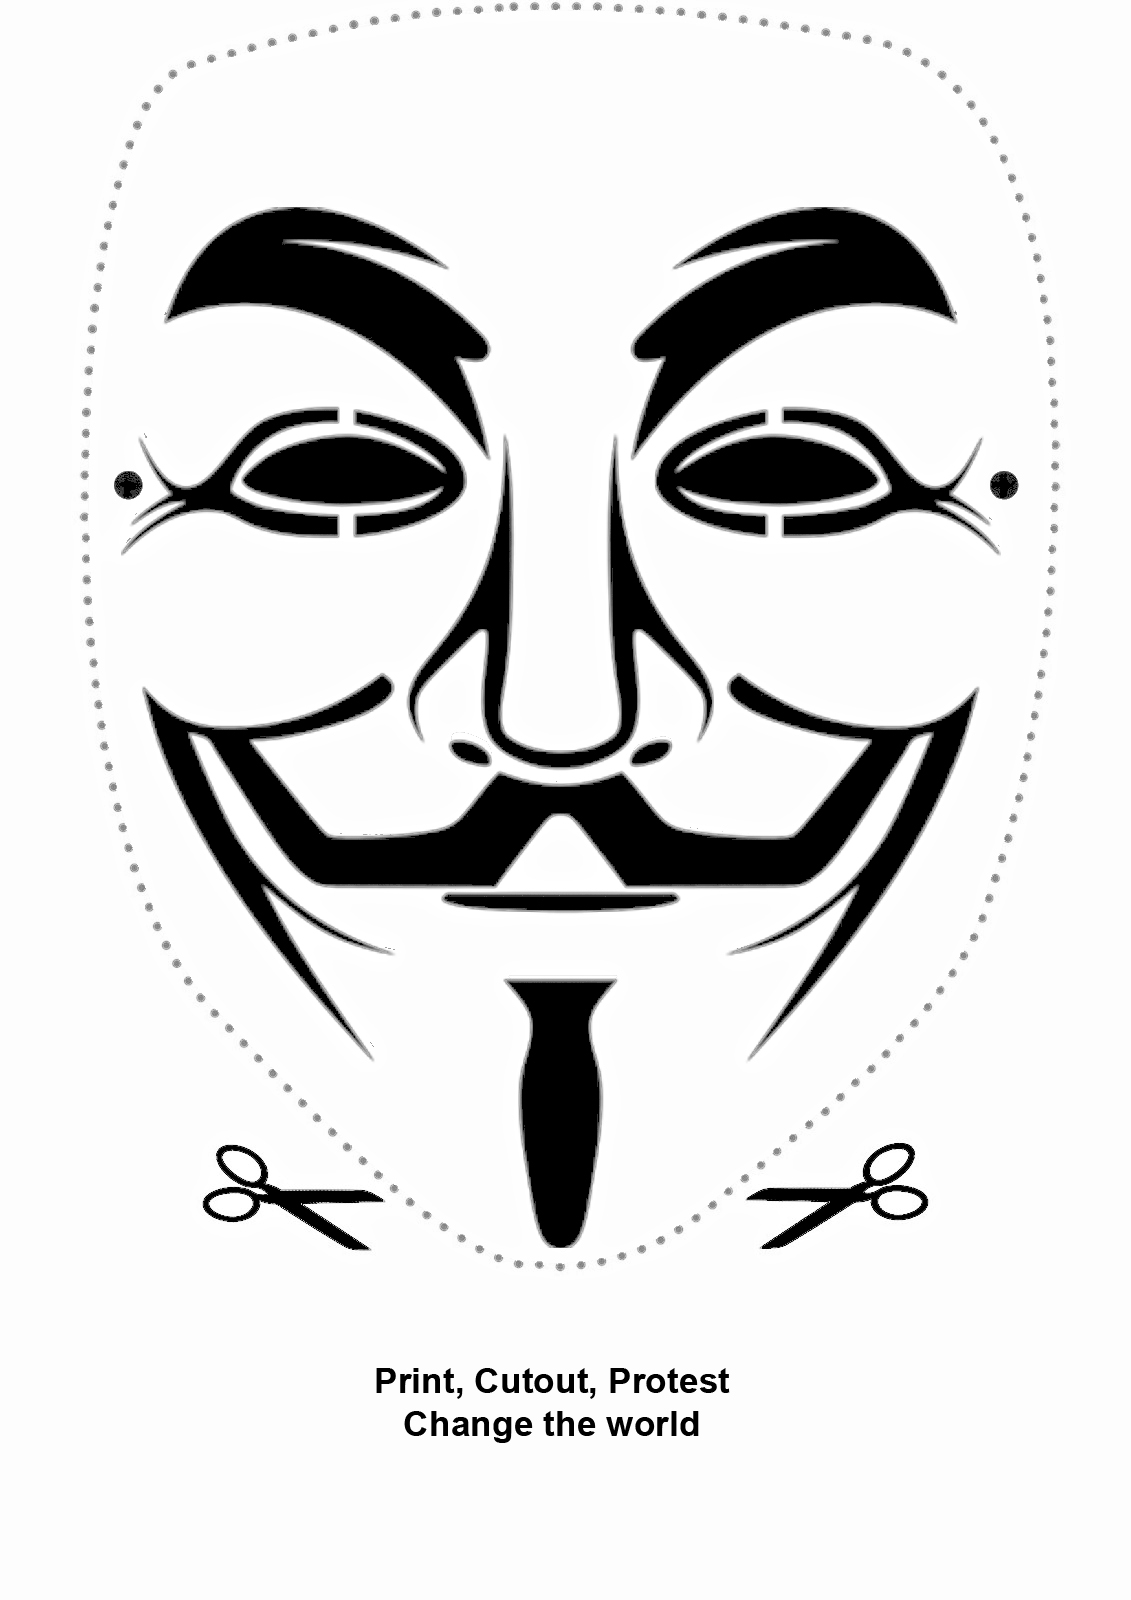 guy fawkes mask paper cutout